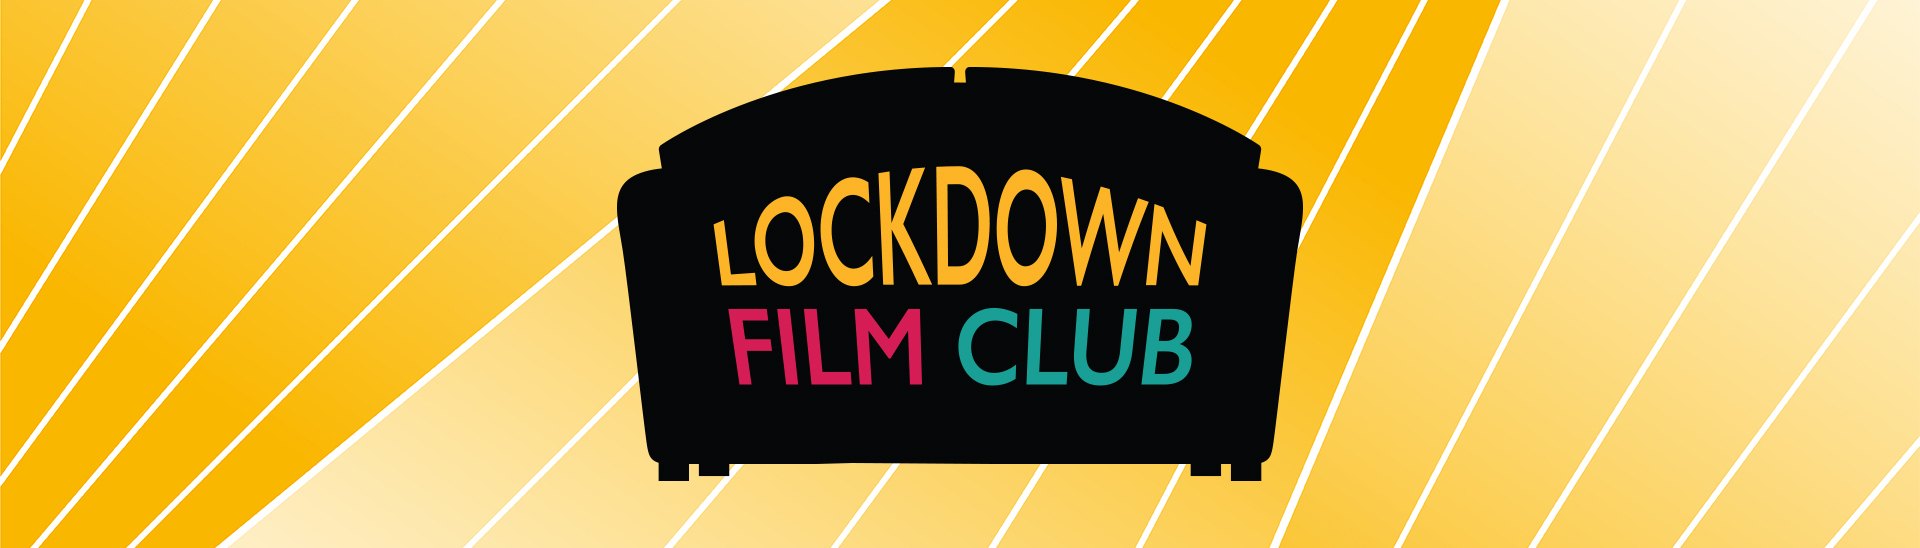 lock down film club banner